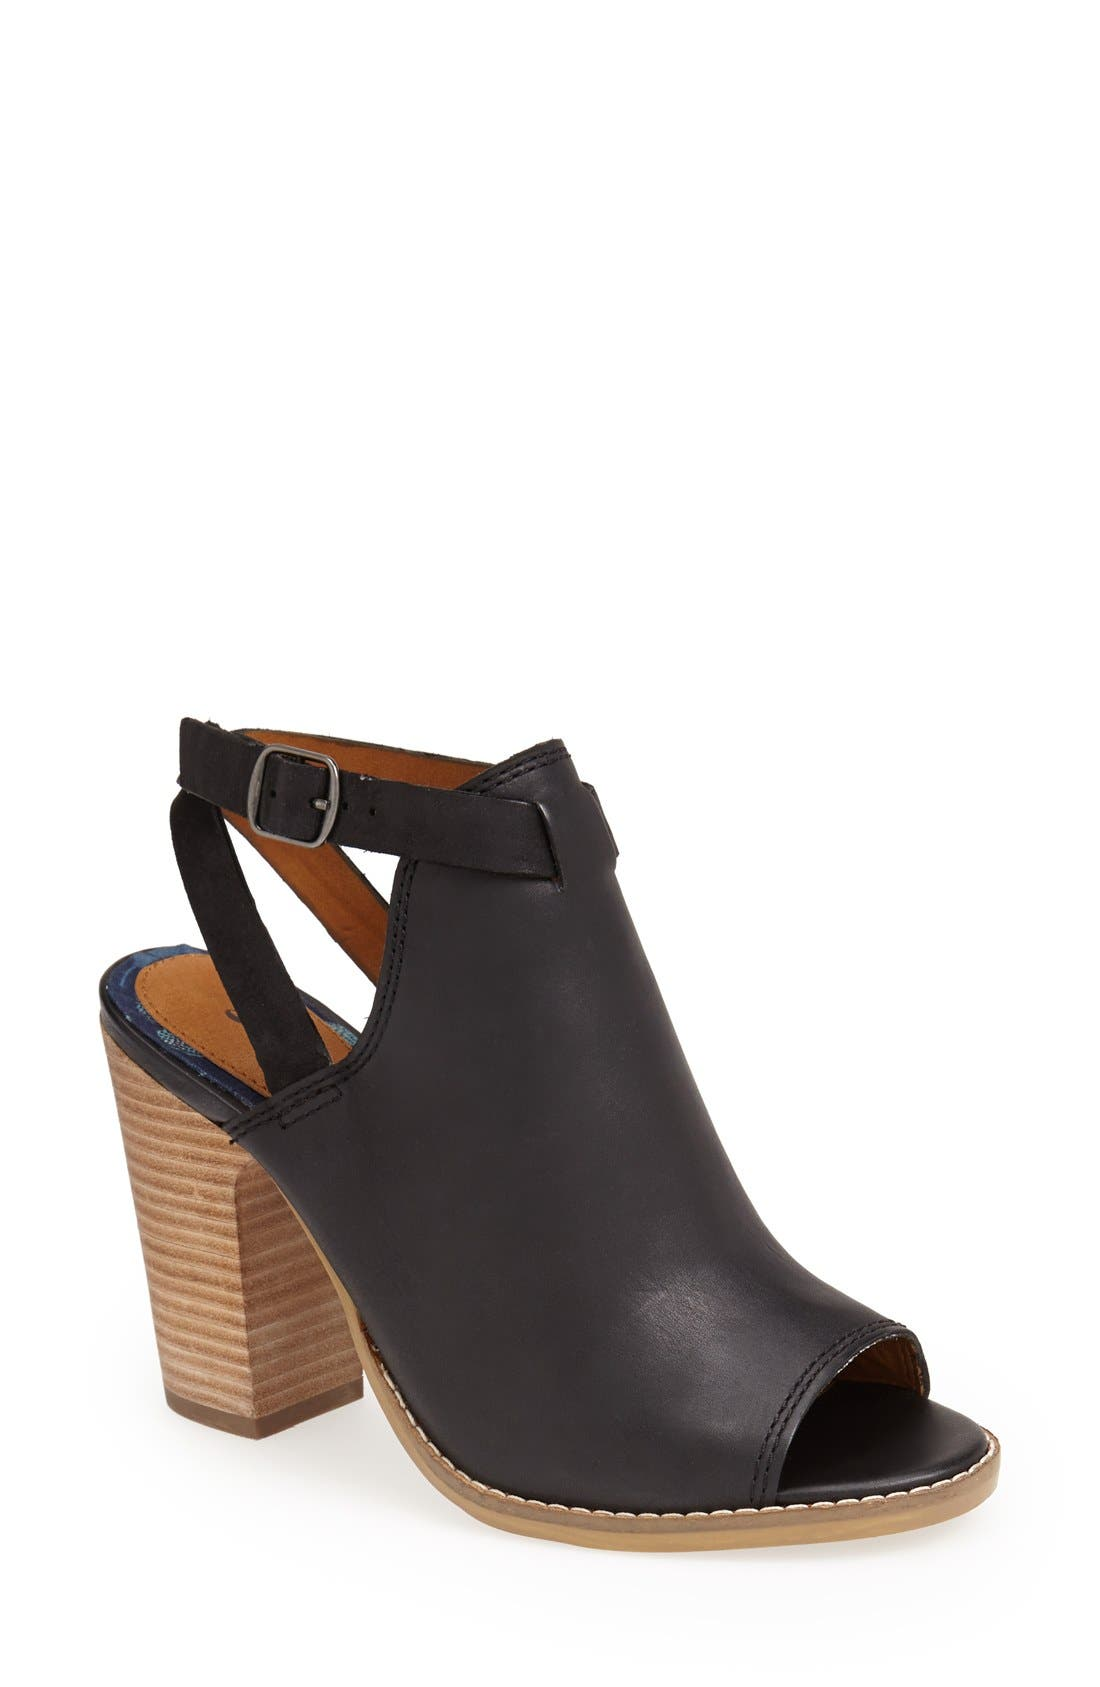 Main Image - Lucky Brand 'Lubov' Cutout Bootie (Women)